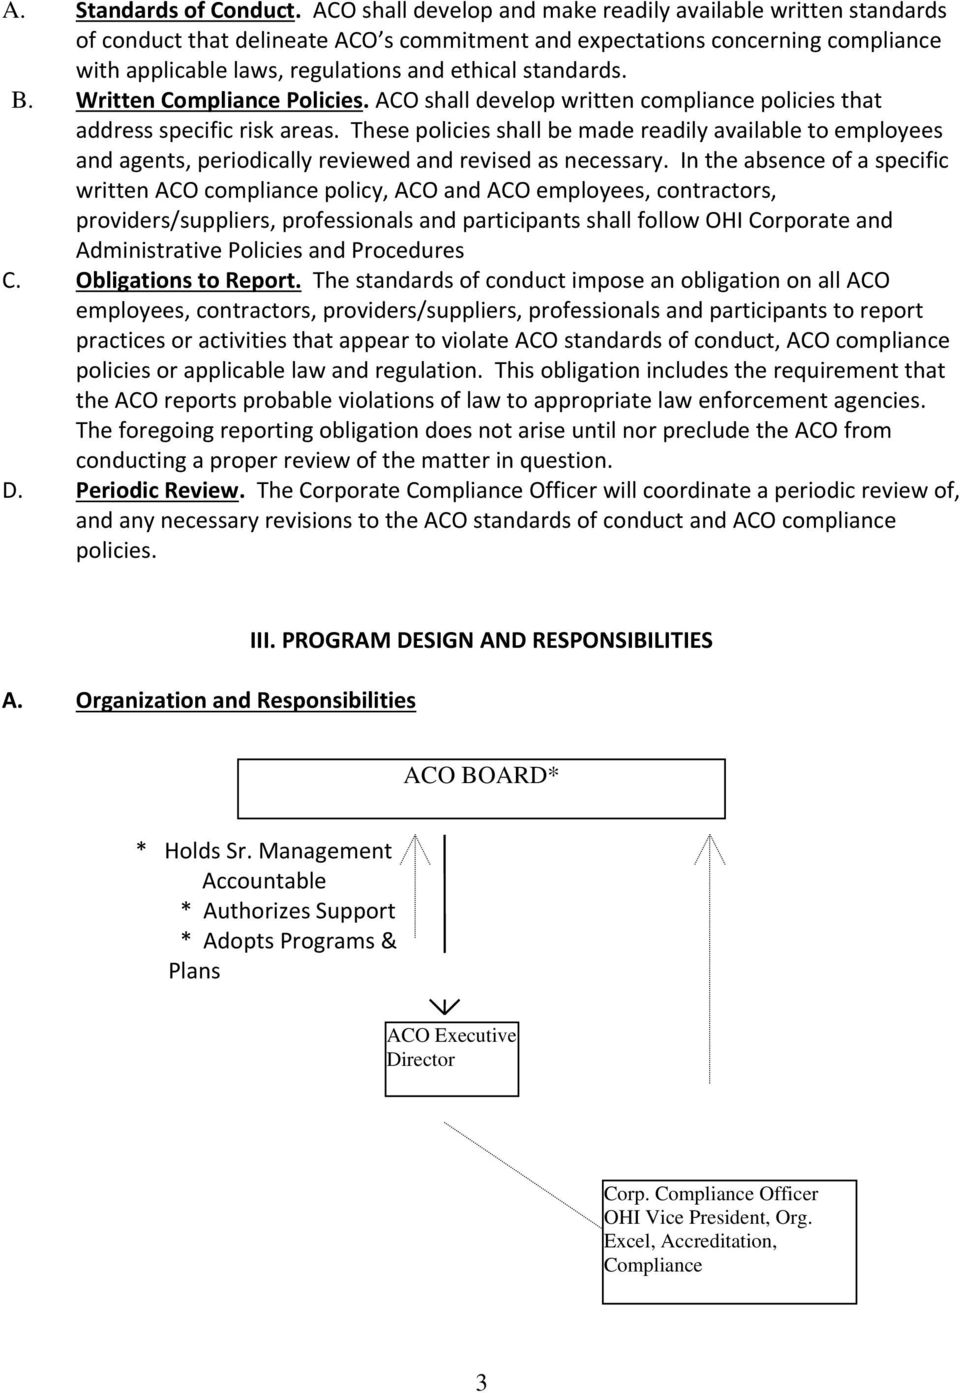 standards. B. Written Compliance Policies. ACO shall develop written compliance policies that address specific risk areas.